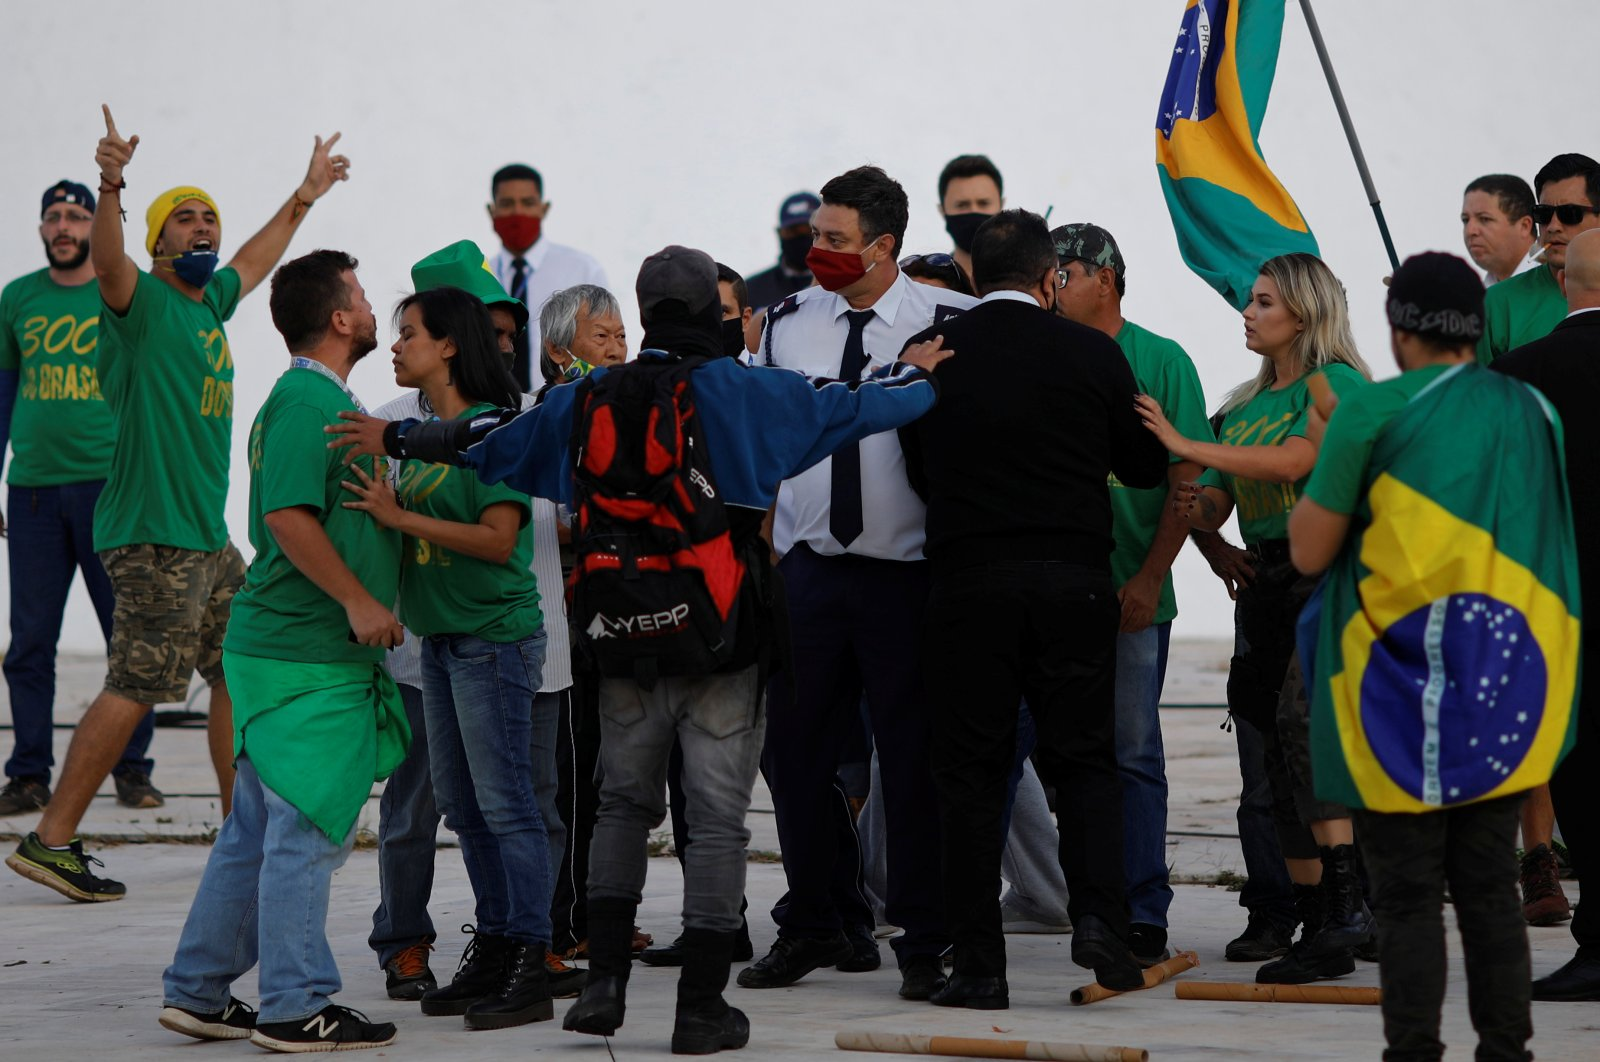 Demonstrators attend a protest against the National Congress and in support of the government of Brazil's President Jair Bolsonaro outside the National Congress building in Brasilia, Brazil June 13, 2020. (Reuters Photo)